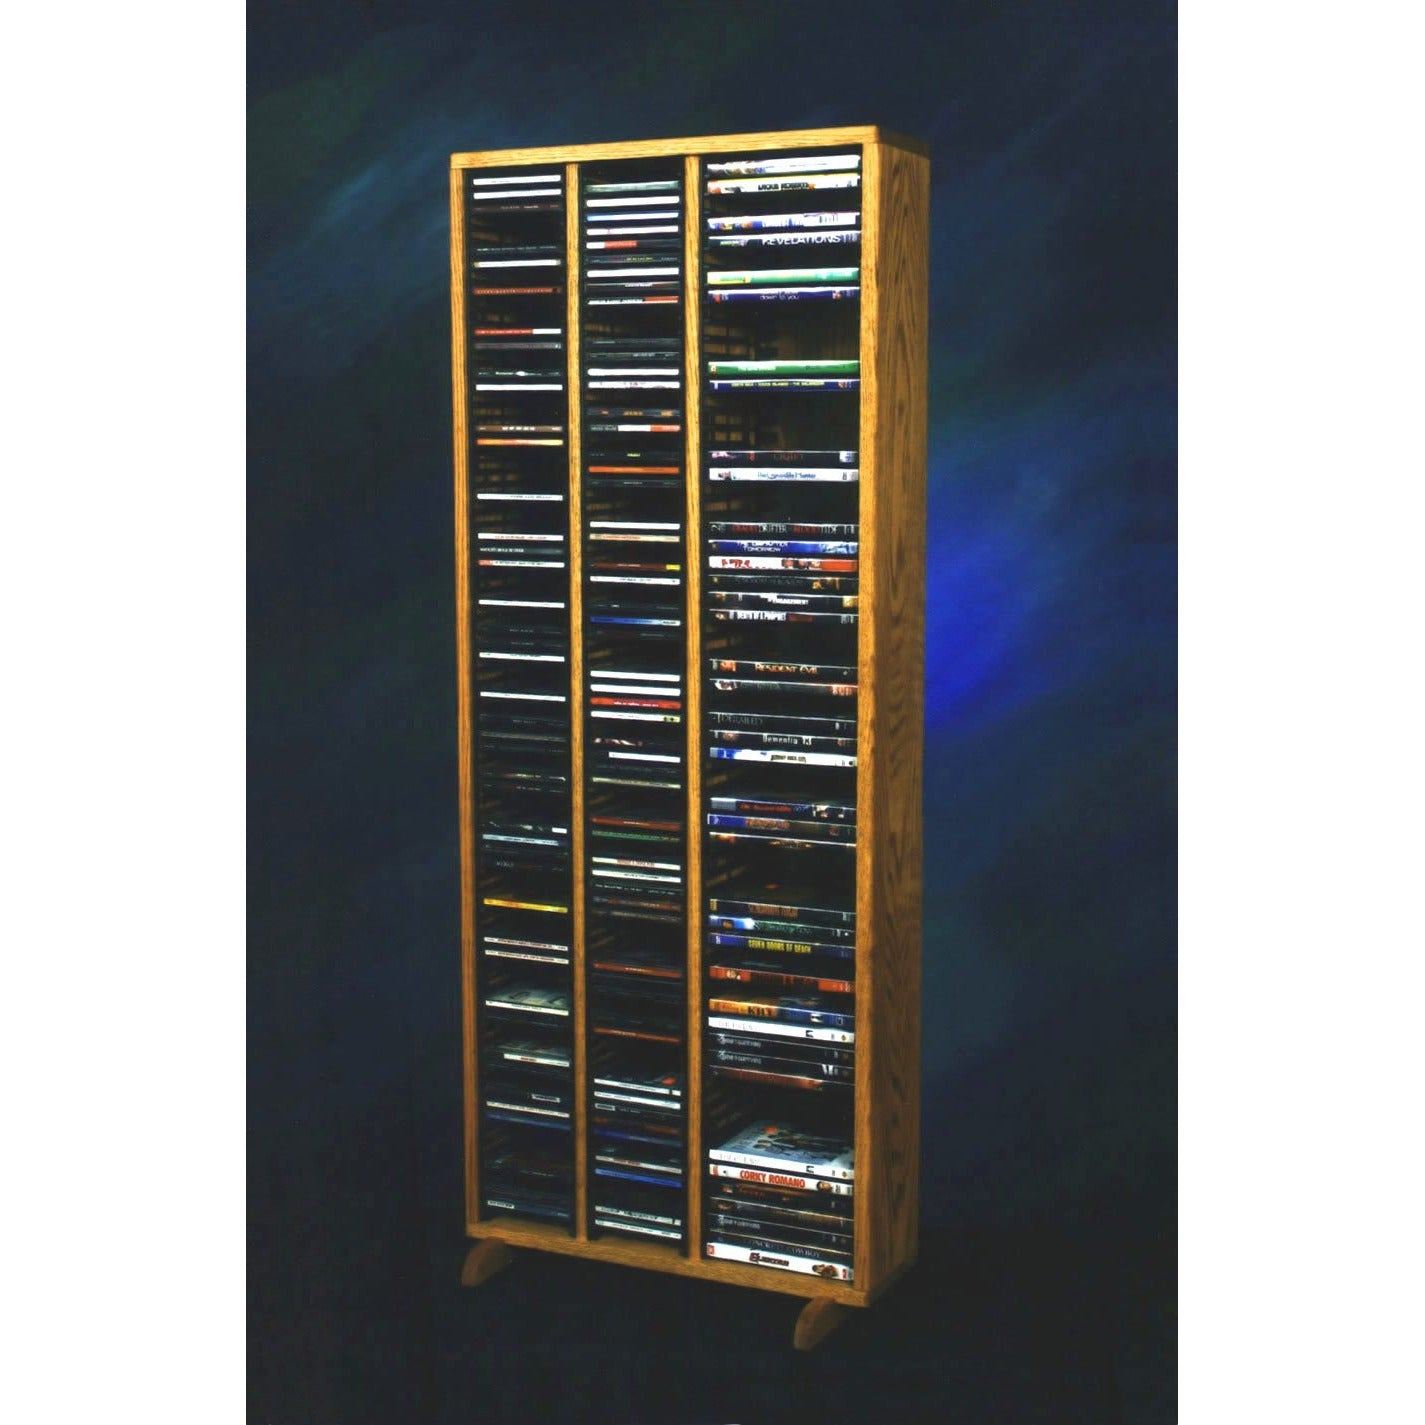 12 Series CD/Blu-ray Combination Cabinets - 3 shelves/columns - 4 sizes